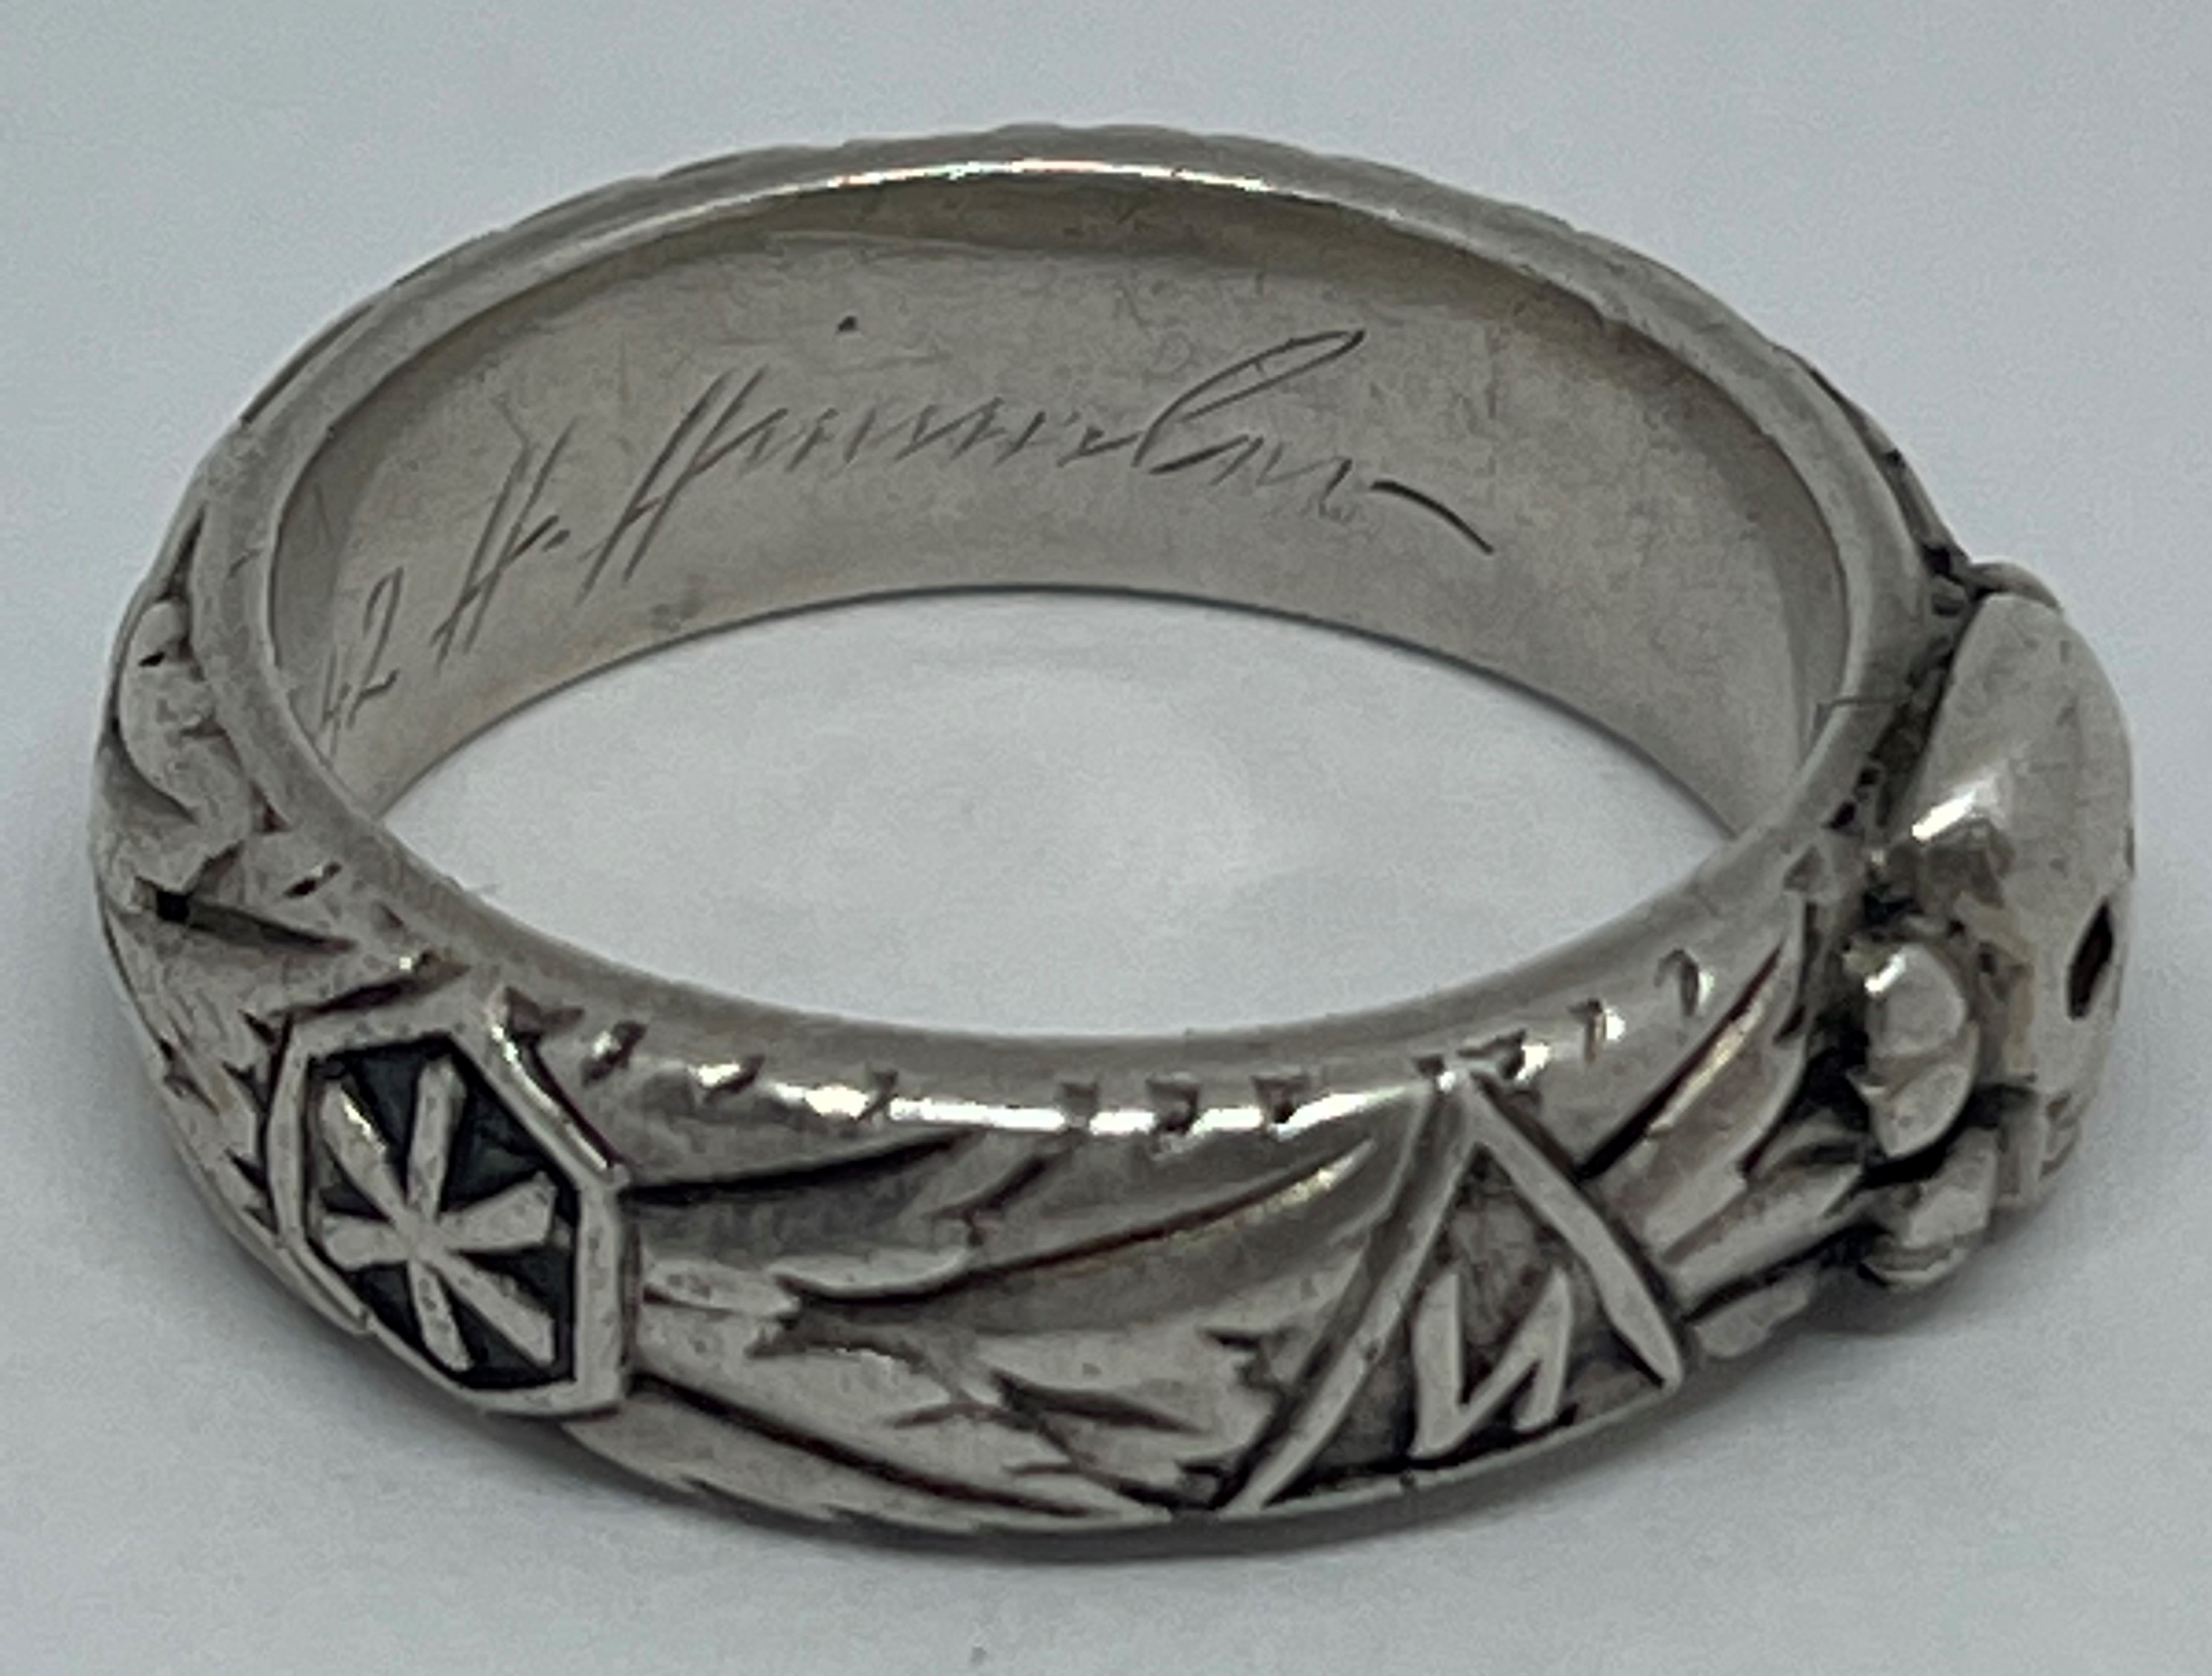 """WW2 Third Reich SS Ehrenring Totenkopf Honour Ring. Inscription engraved to the band """"Slb Rudolph - Image 4 of 5"""